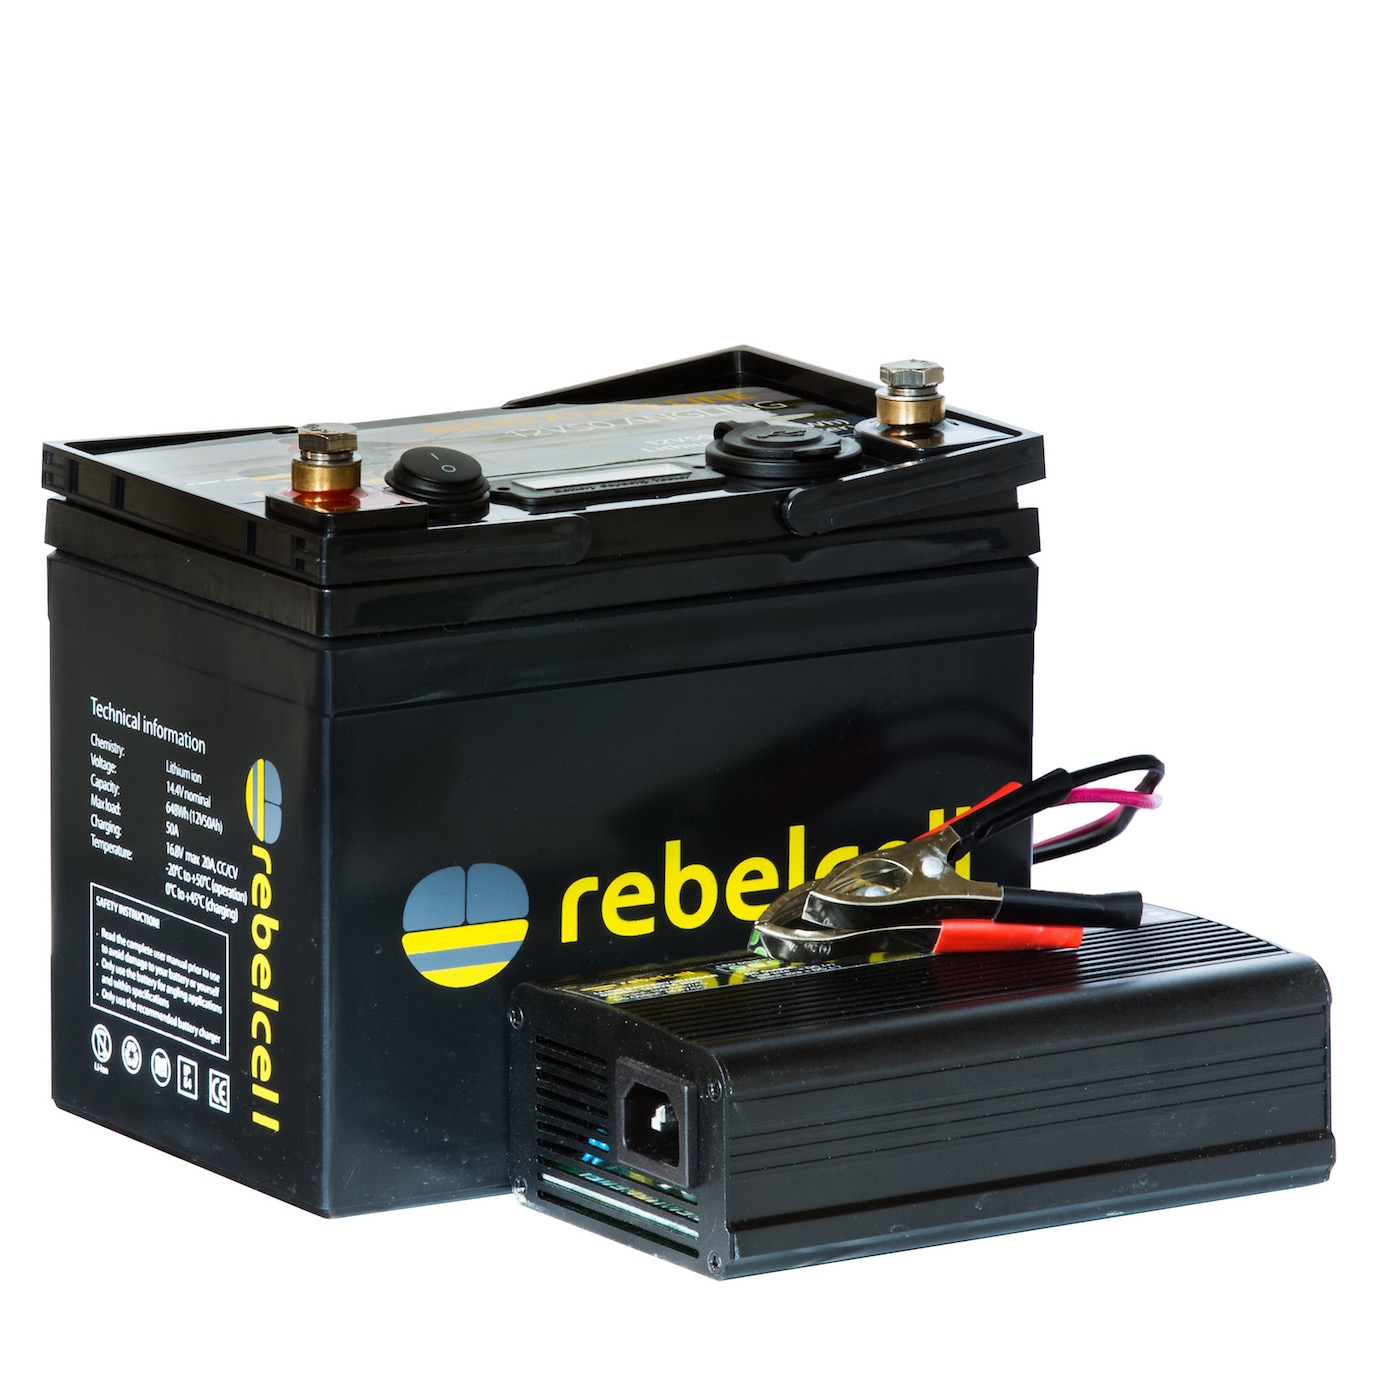 Rebelcell Ultimate 12V50 Duo Inkl. Lader